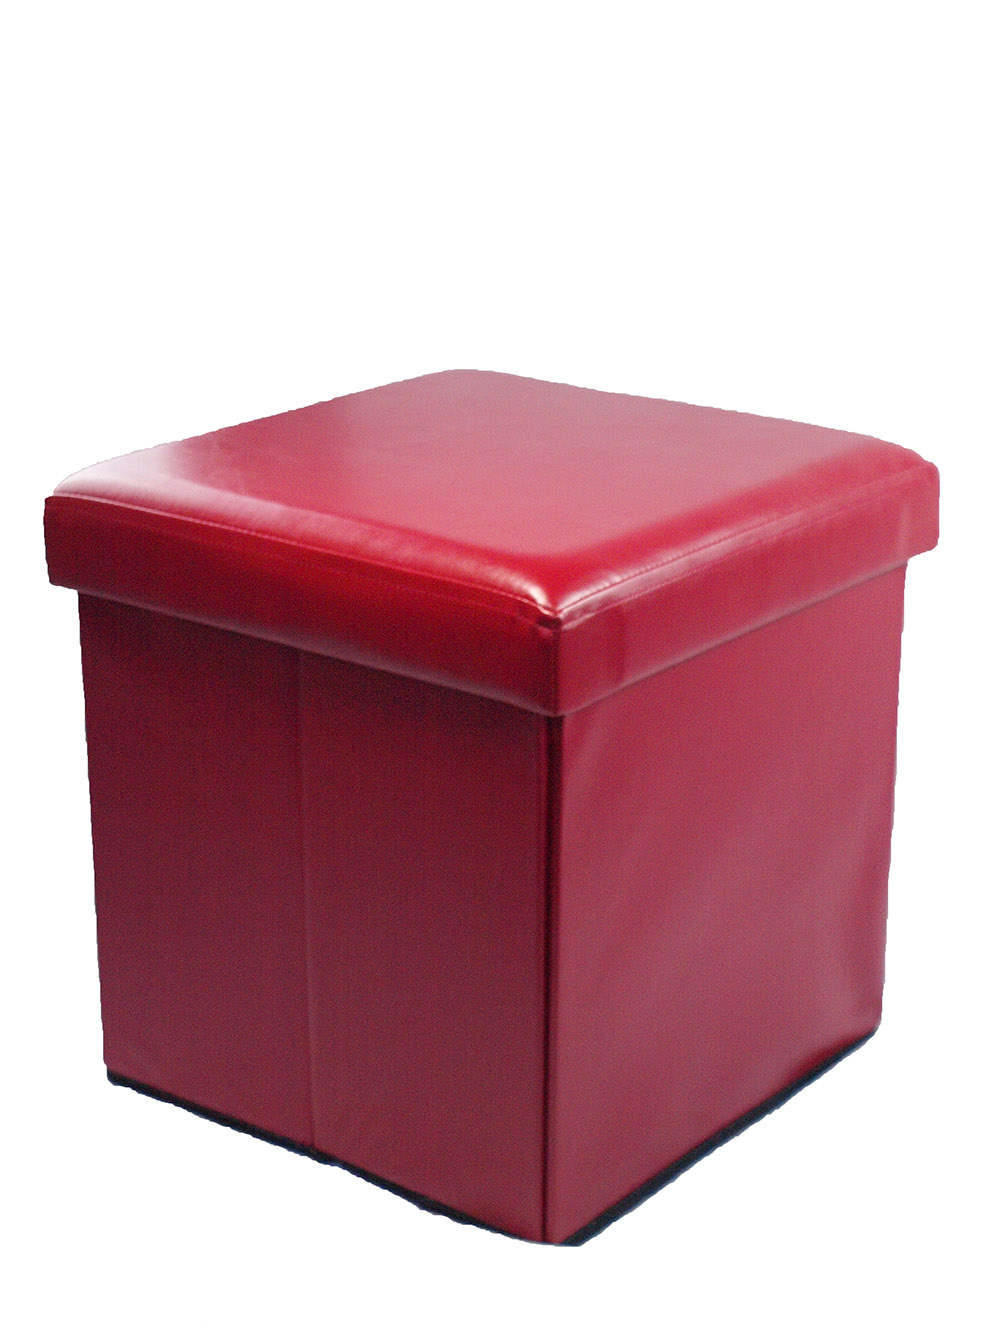 Multi Purpose Faux Leather Folding Ottoman Storage Box